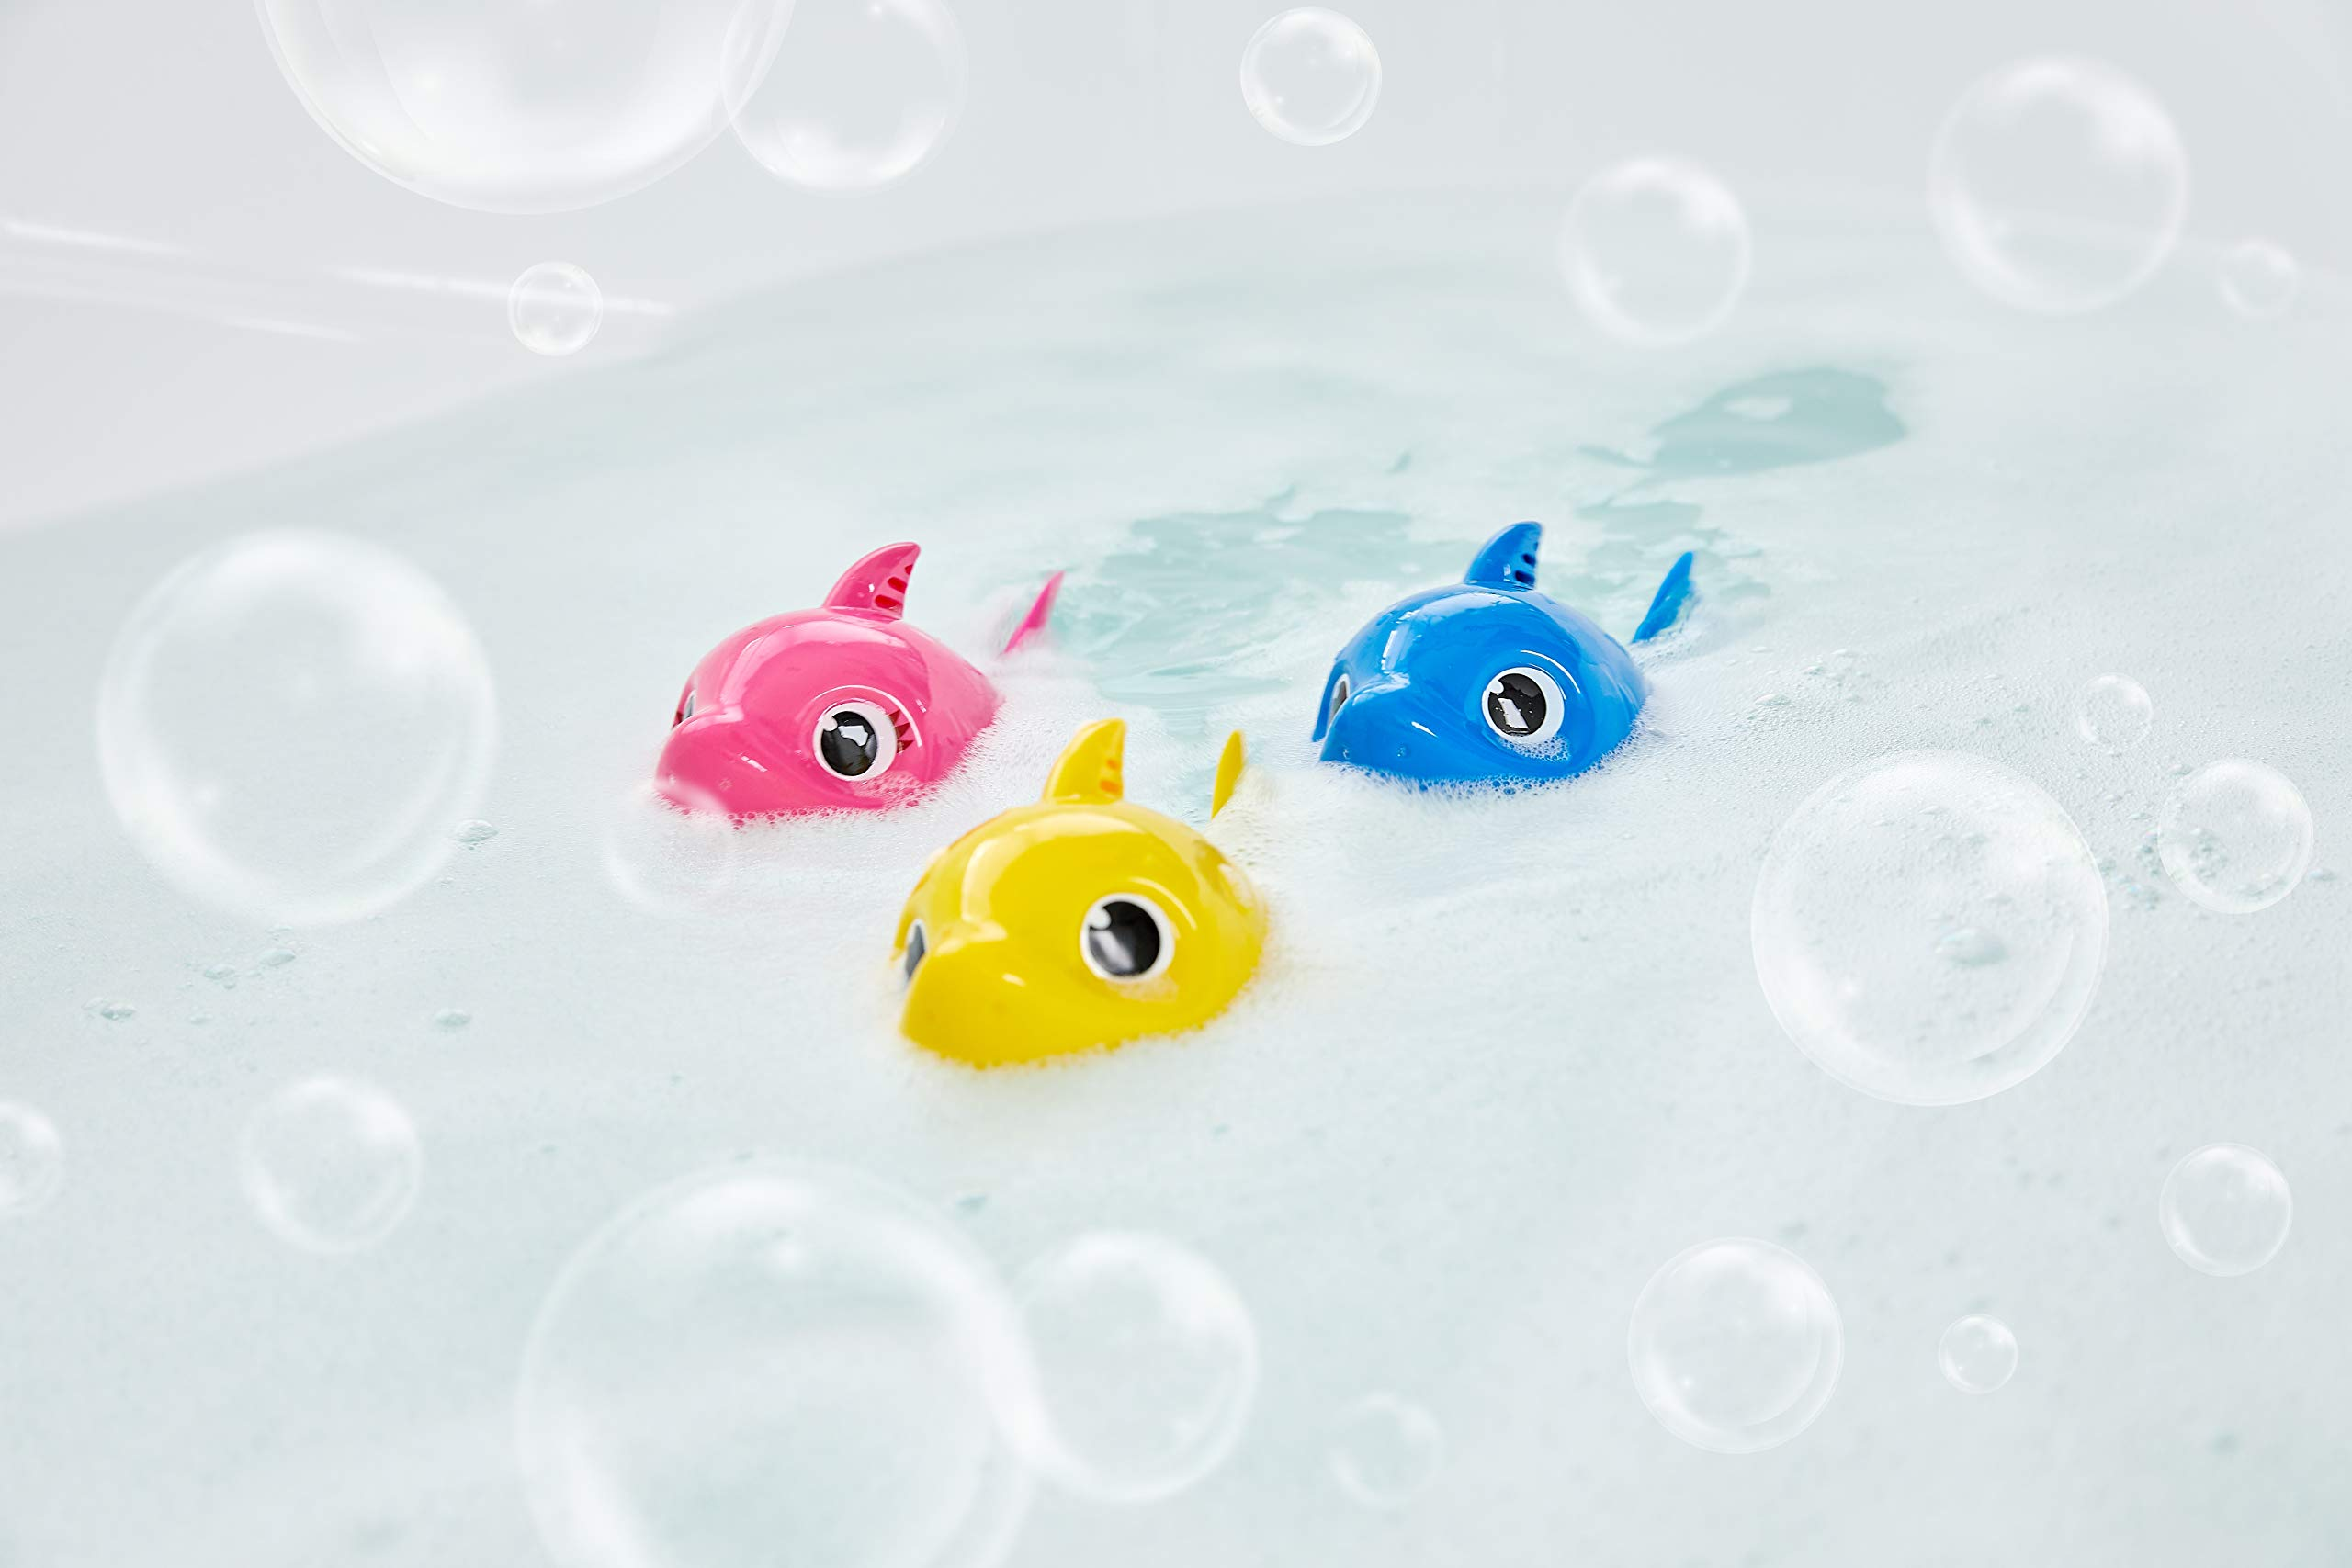 Robo Alive Junior Baby Shark Battery-Powered Sing and Swim Bath Toy by ZURU - Baby Shark (Yellow) by Robo Alive Junior (Image #8)